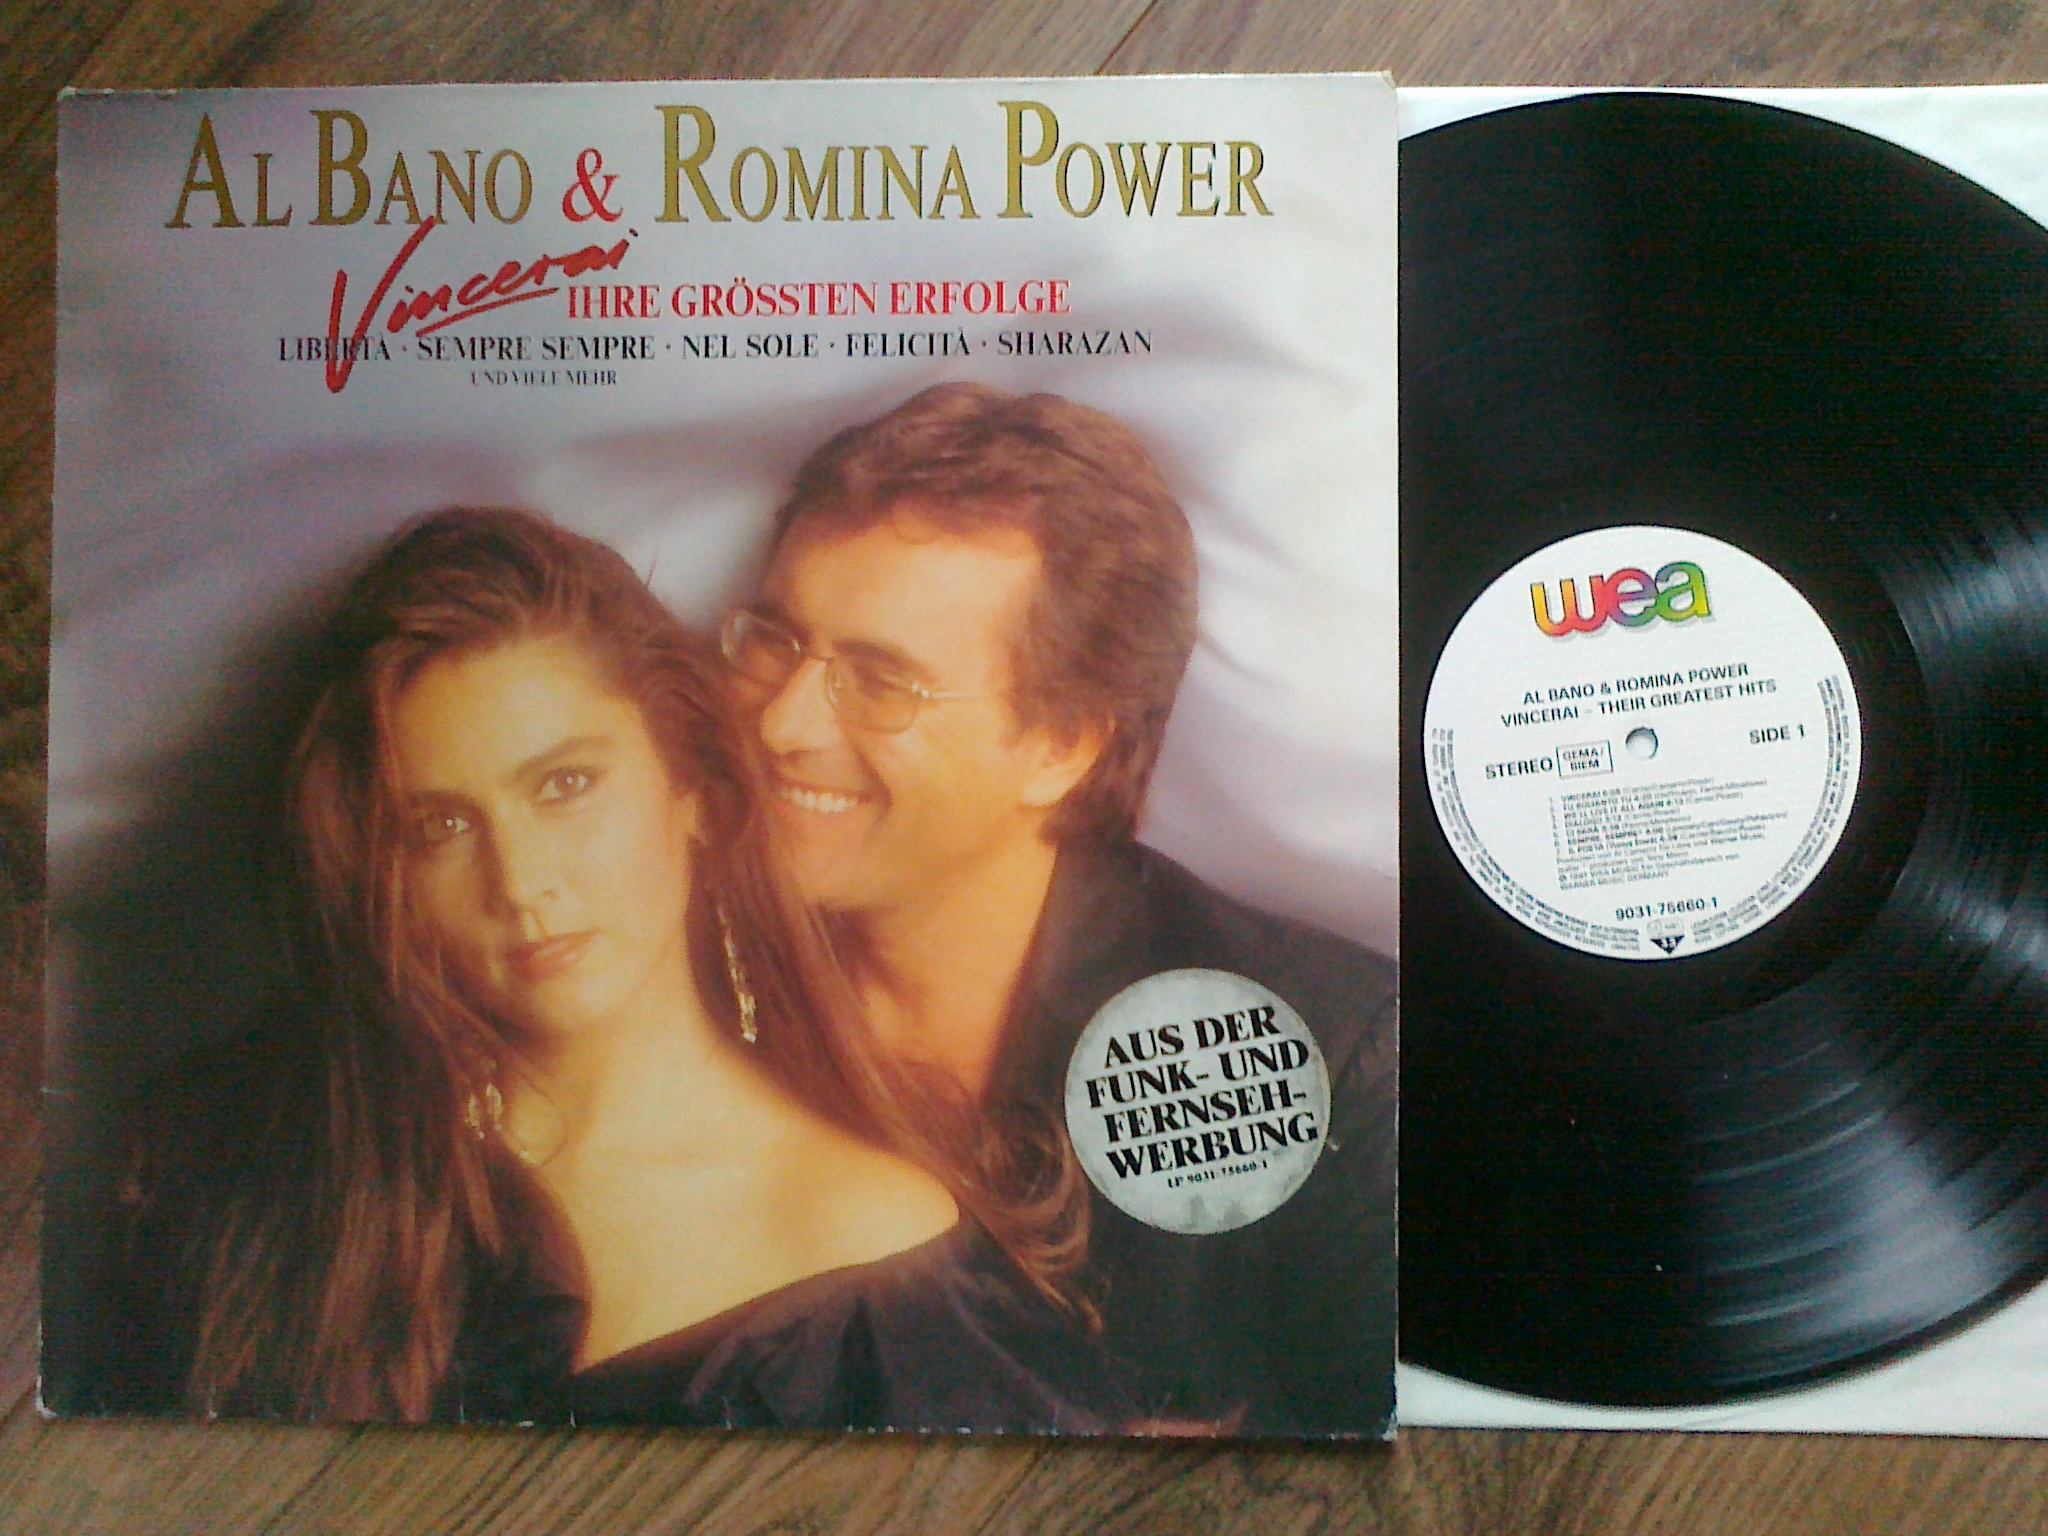 Al Bano & Romina Power - Vincerai (Their Greatest Hits)